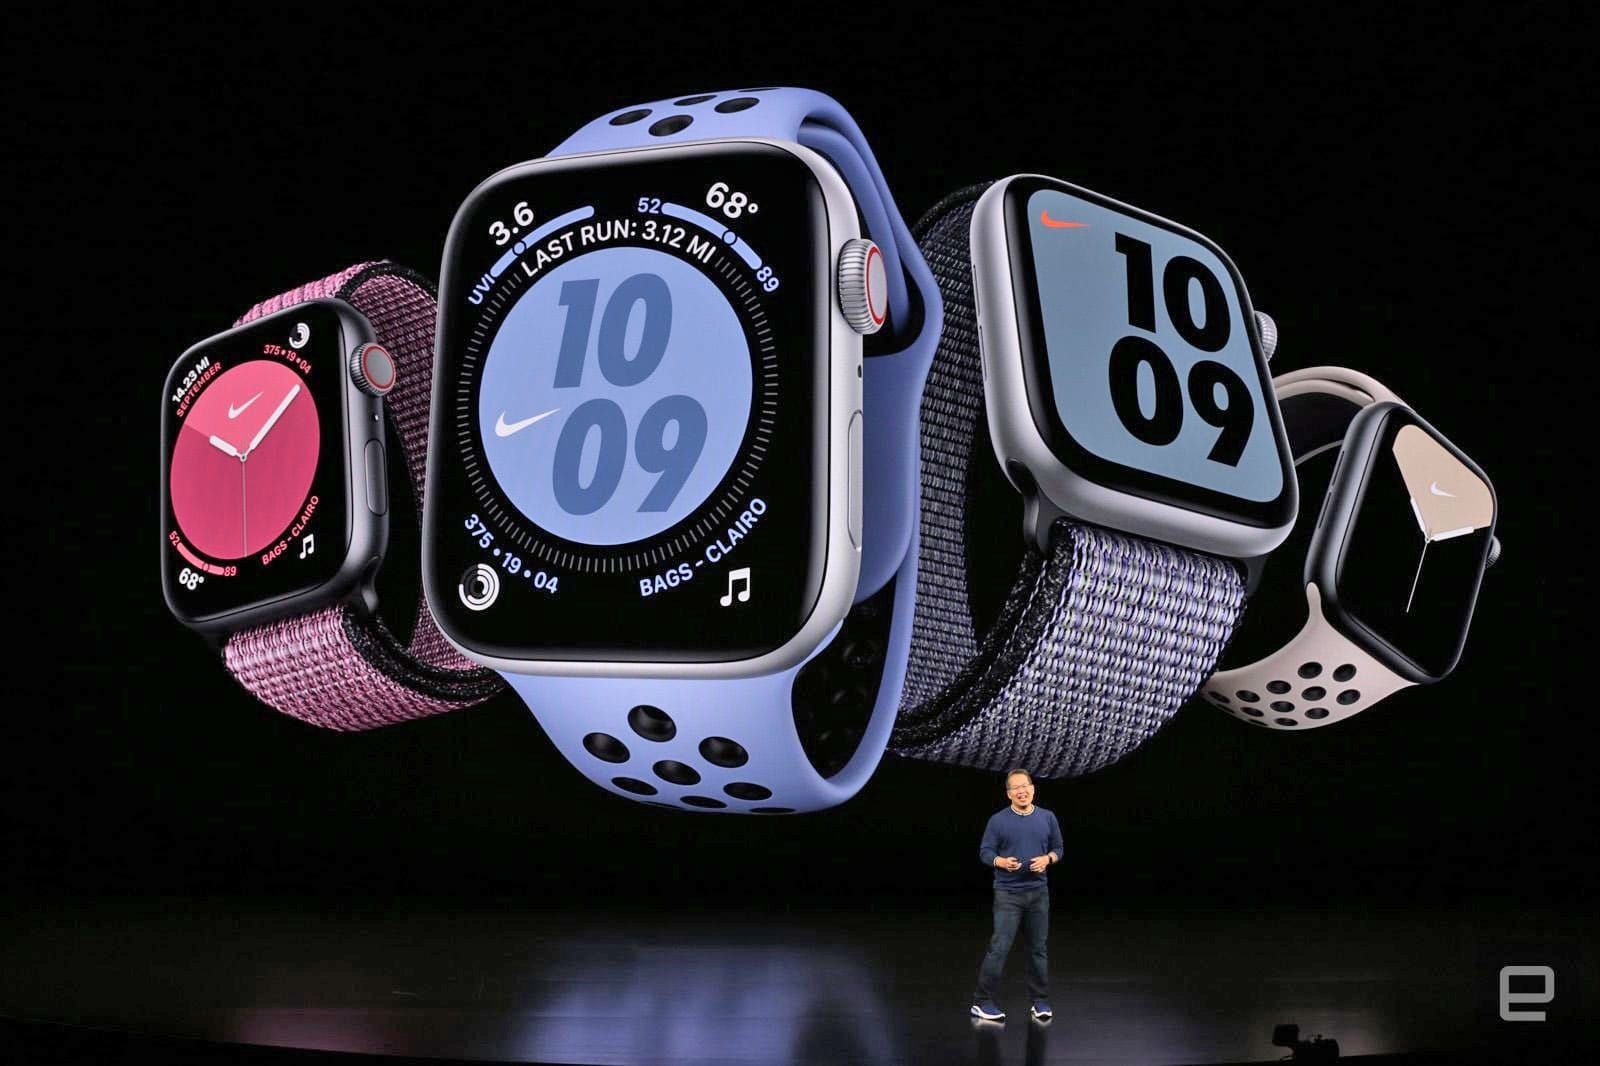 Apple watchOS 6 launches on September 19th